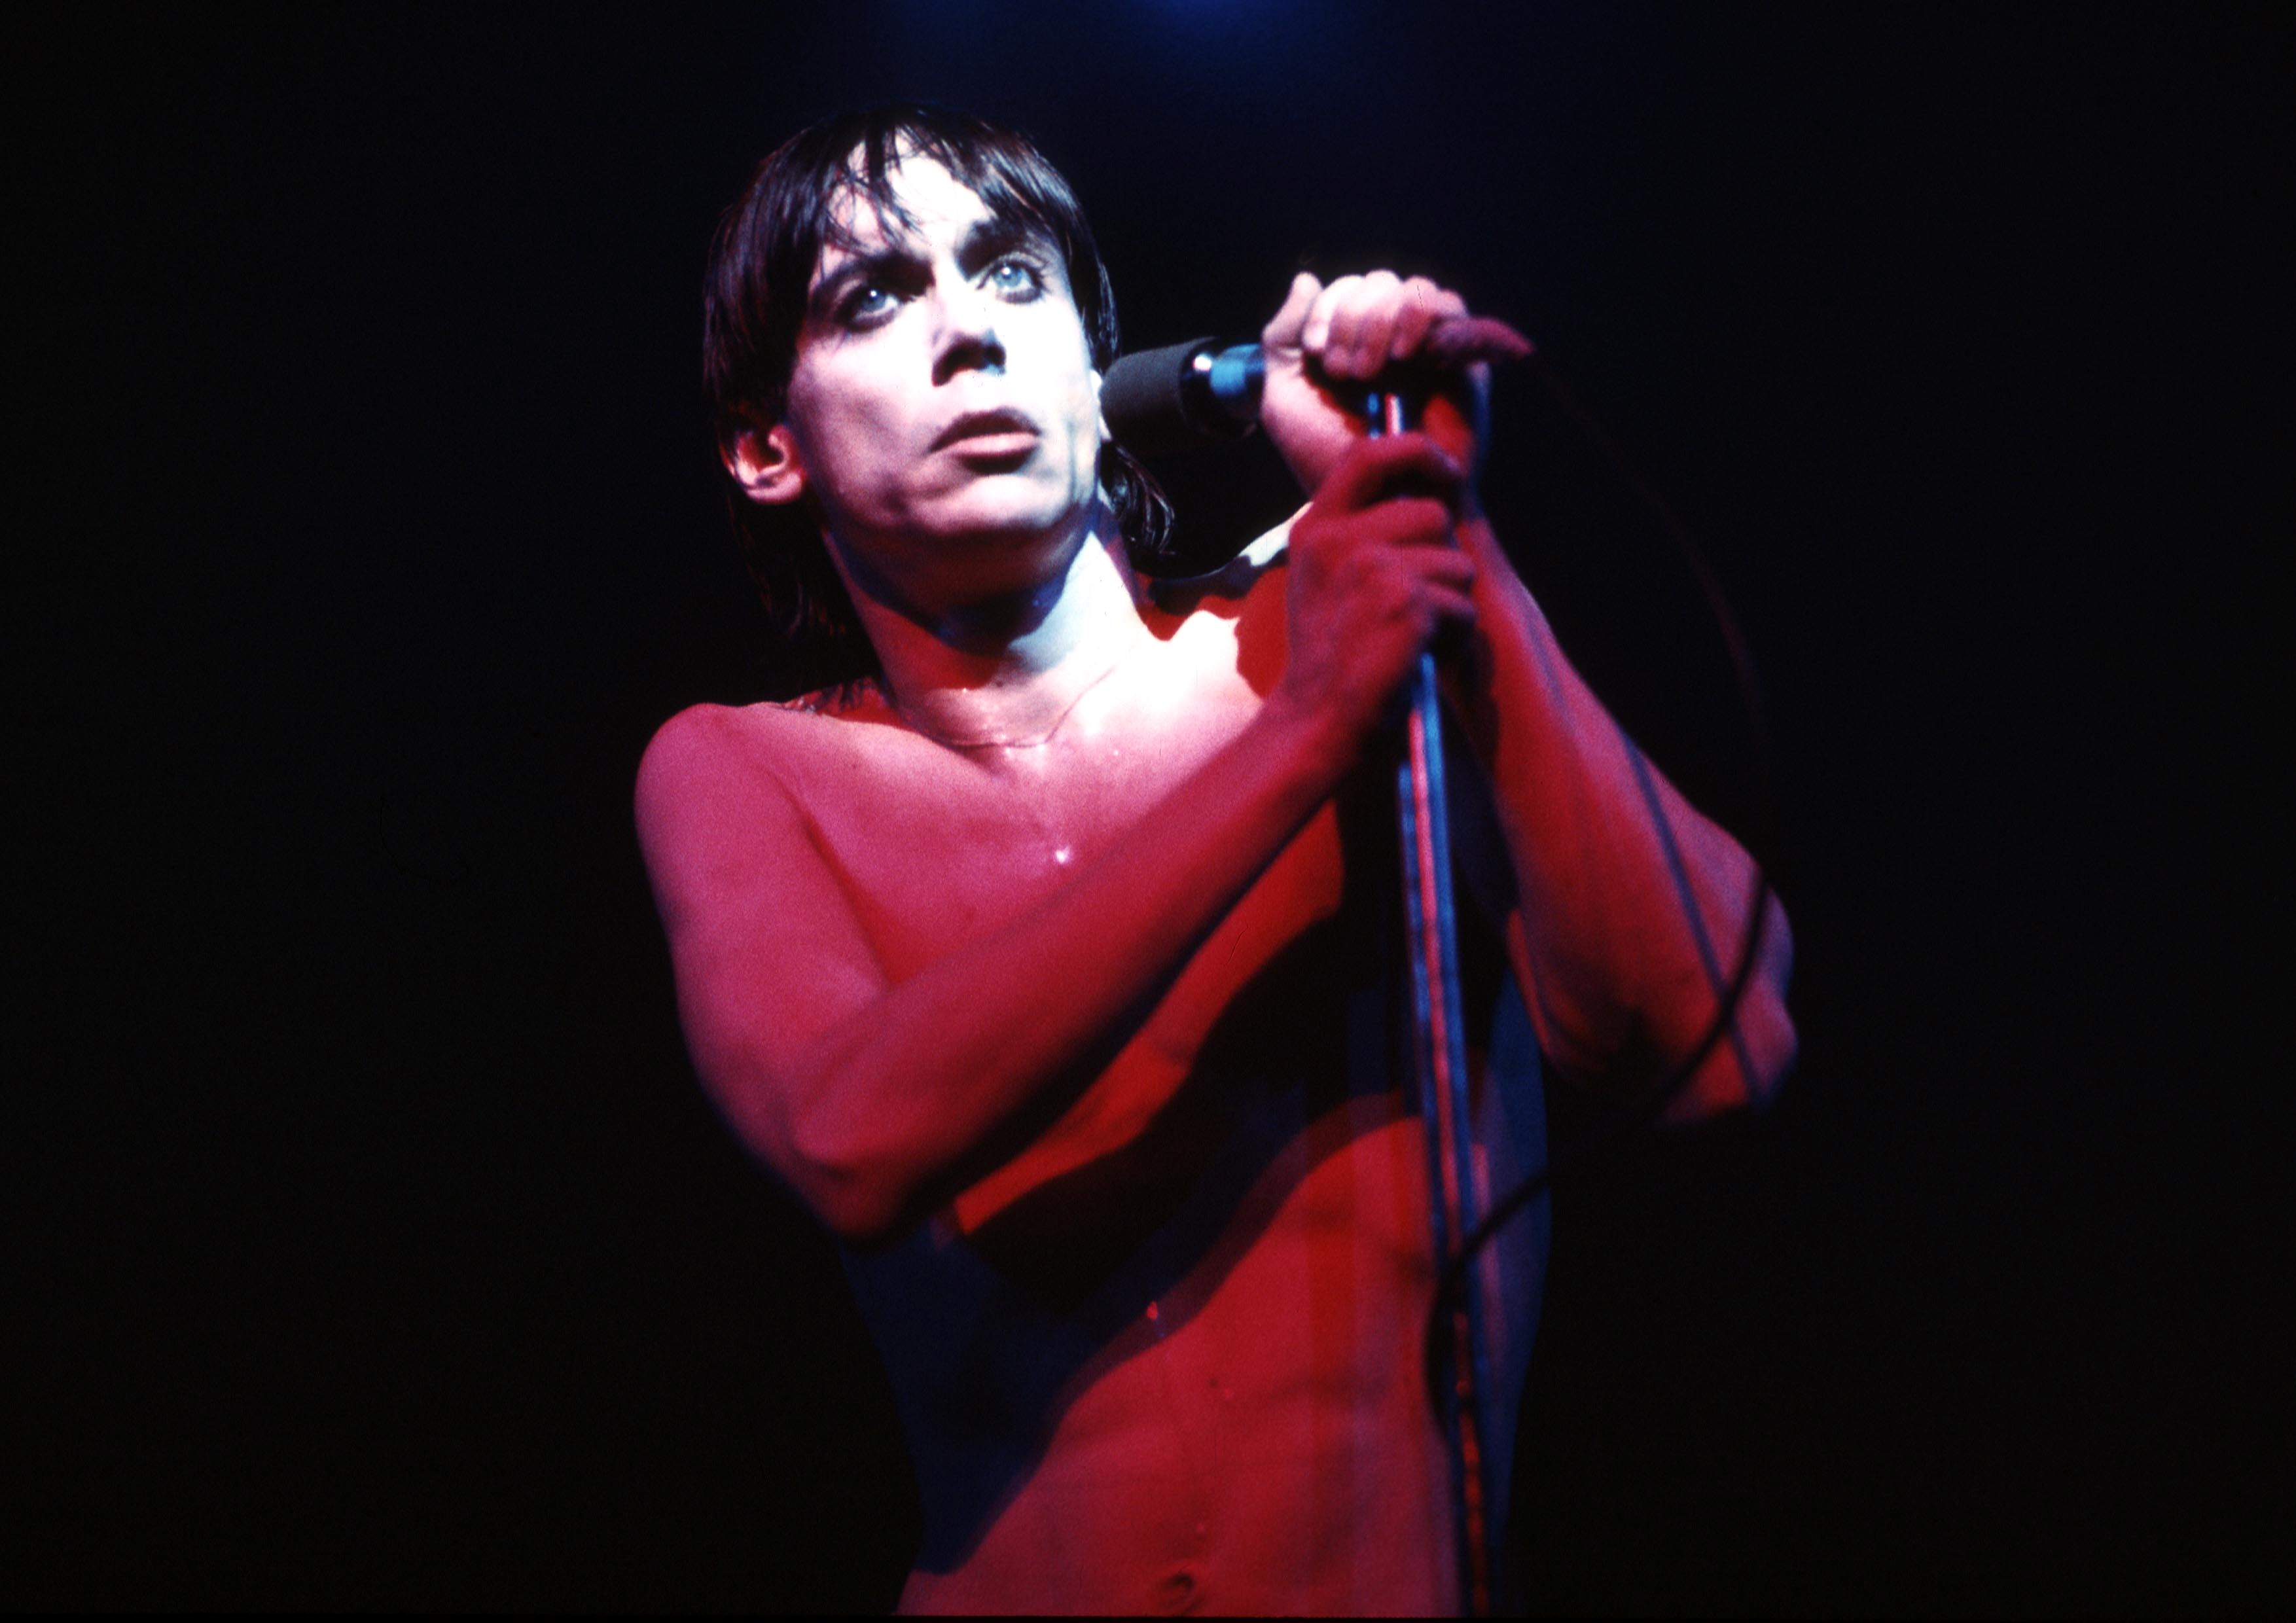 Iggy Pop Albums From Worst To Best  Stereogum